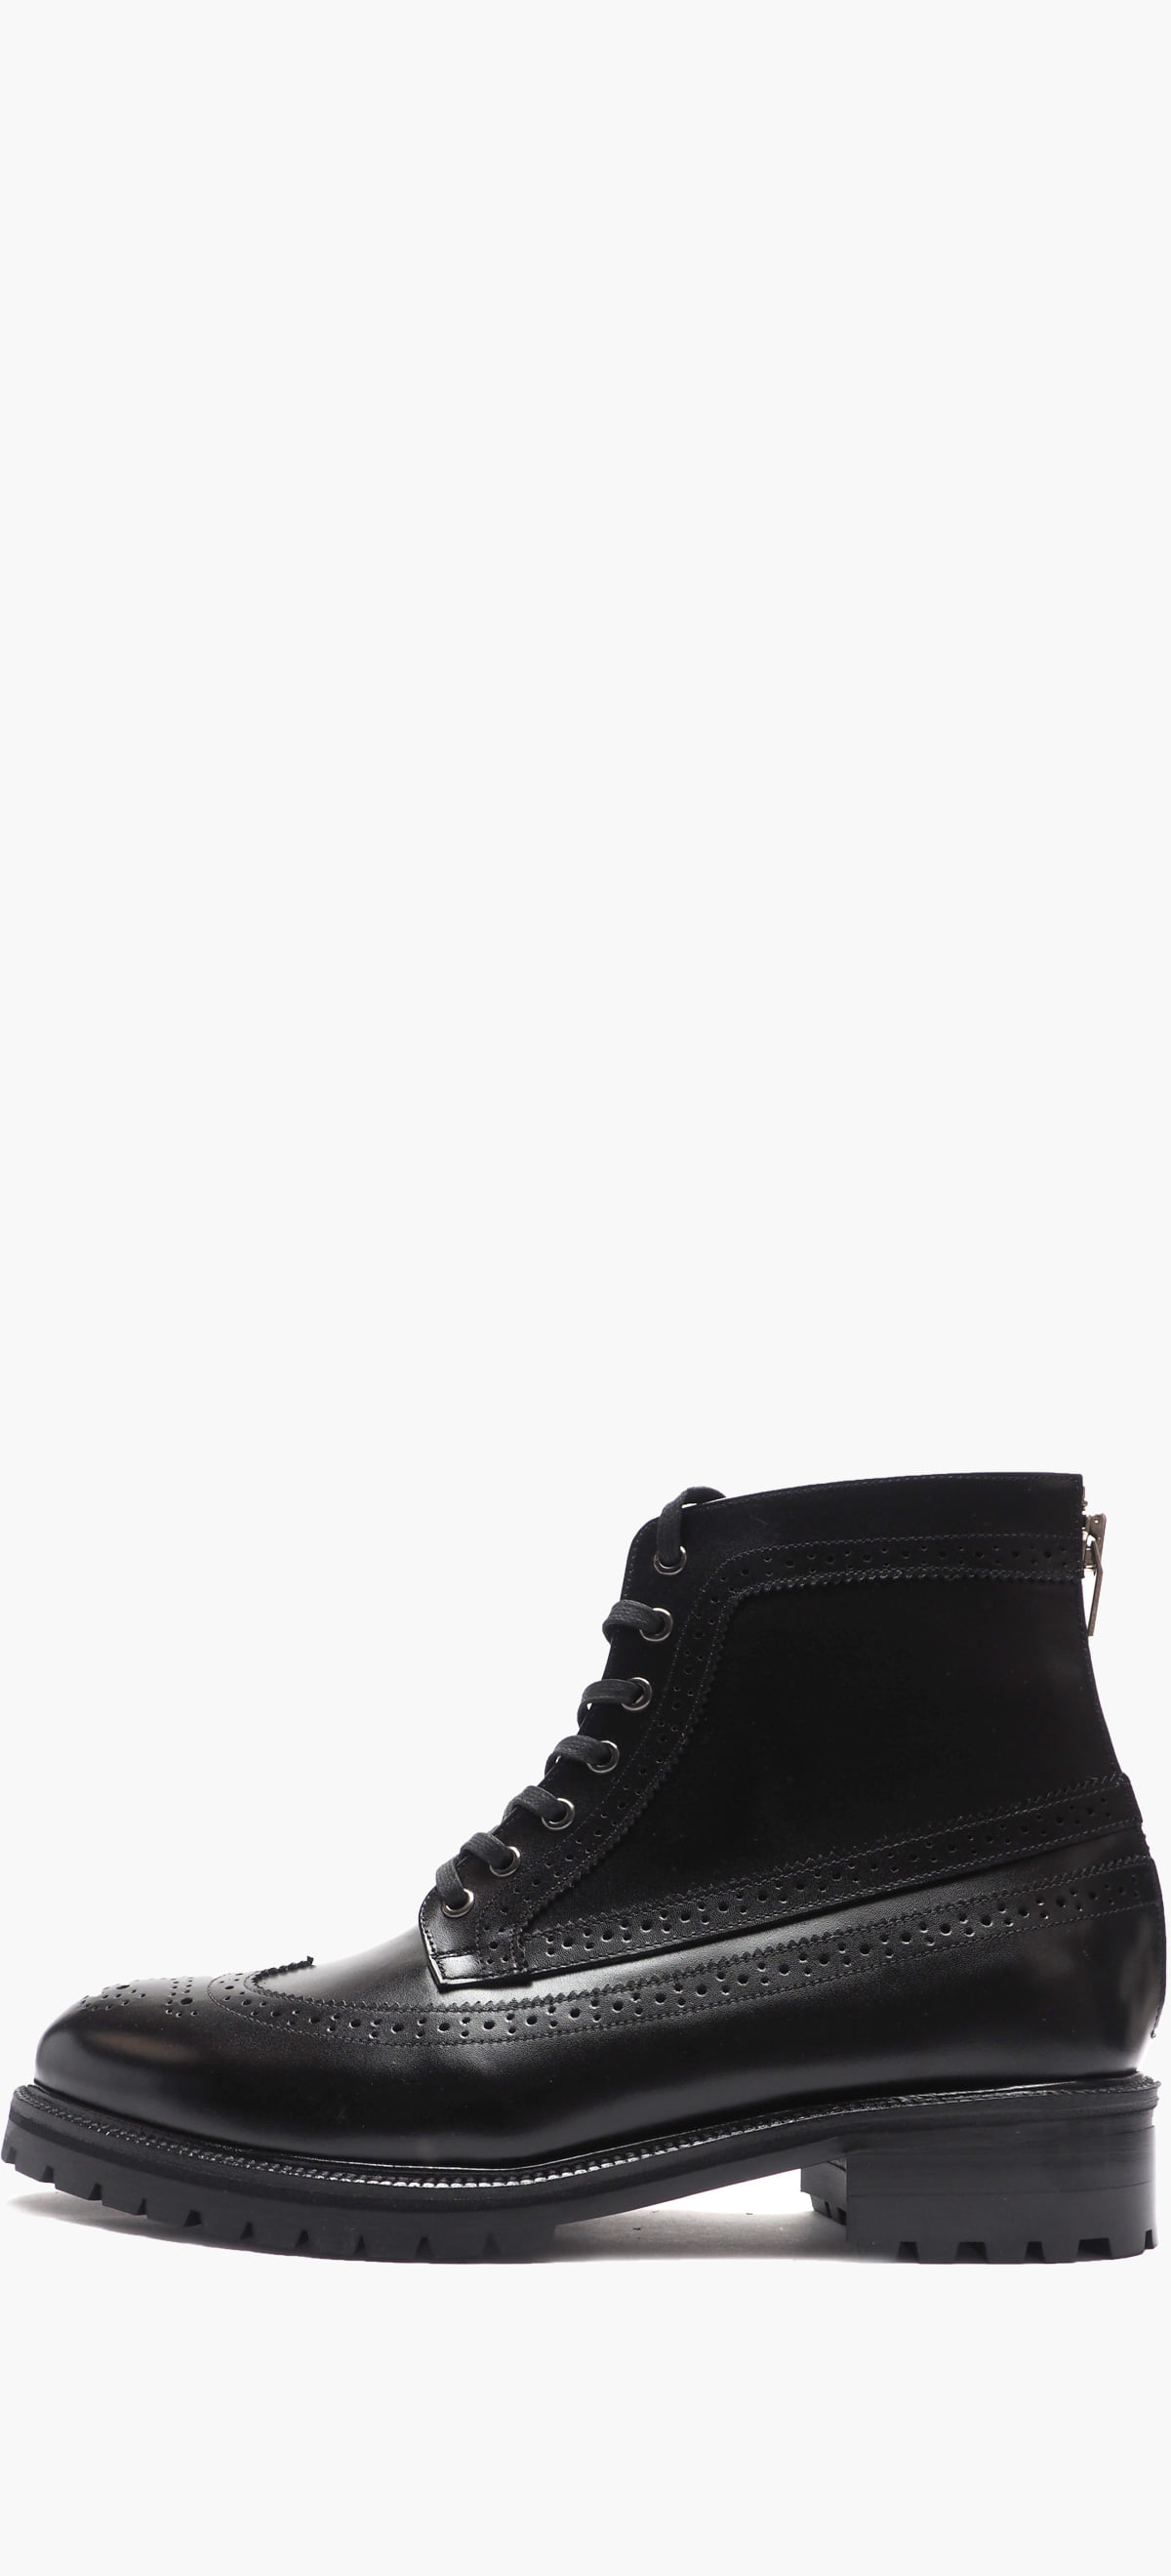 Wing Tip Boots 2246-01 Black Kip 20%Sale